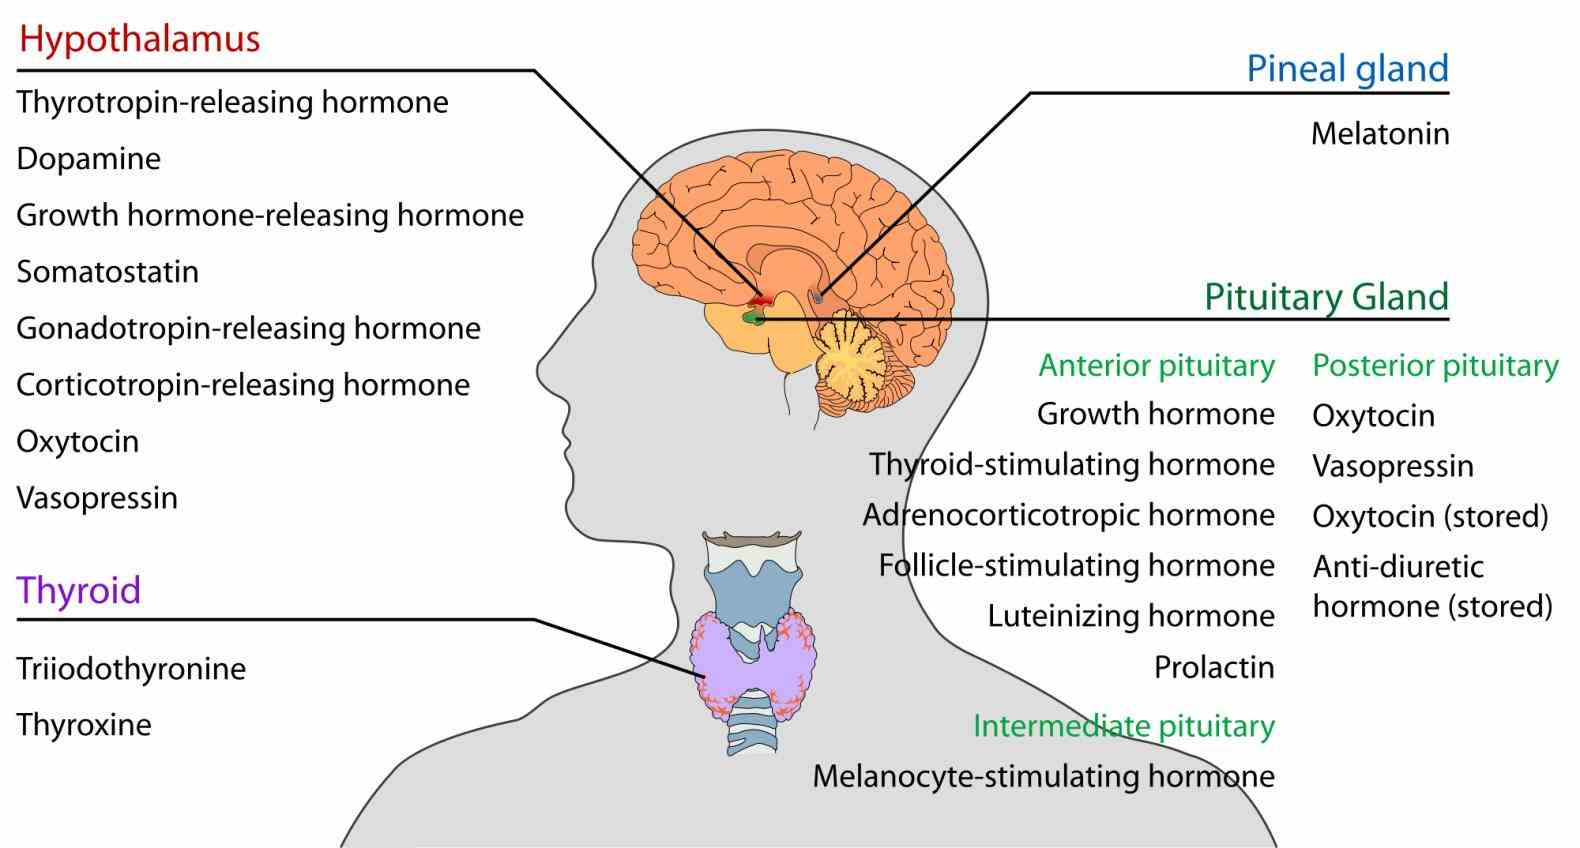 release hormones permitting them to act in concert respond changes the body maintain stability homeostasis de Endocrine System Functions